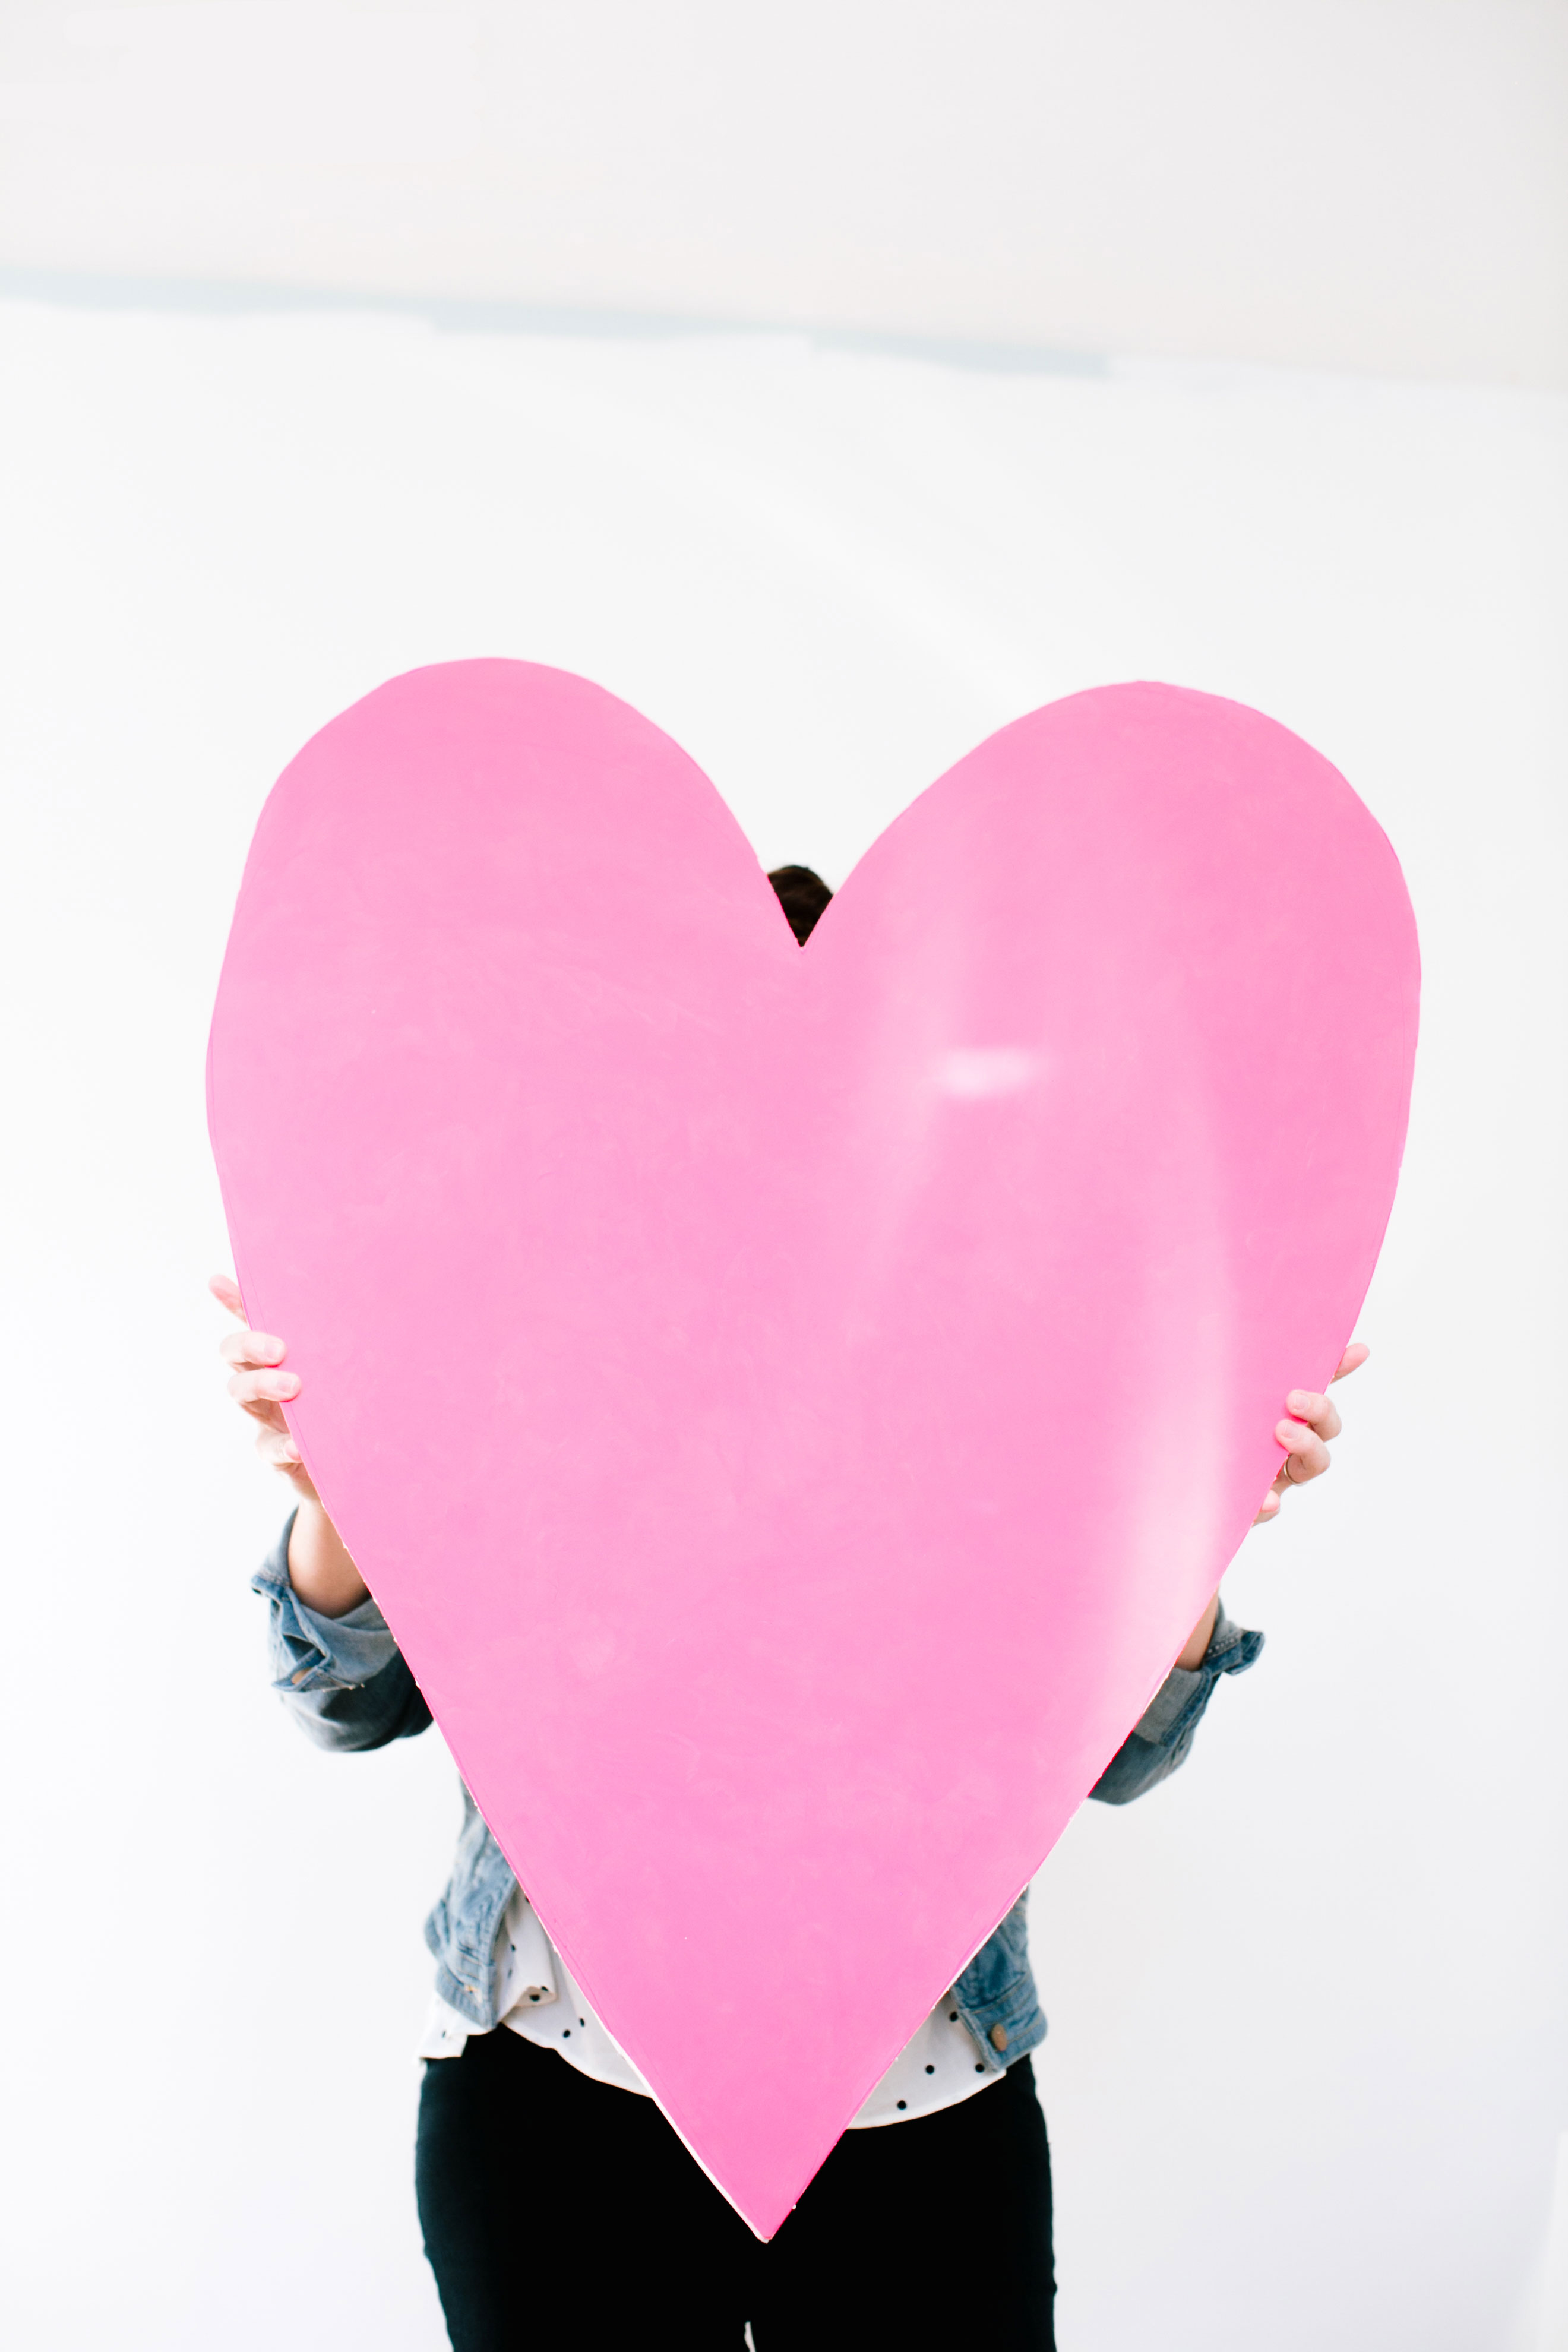 Make This: Giant DIY Heart Art / Prop for Valentine's Day